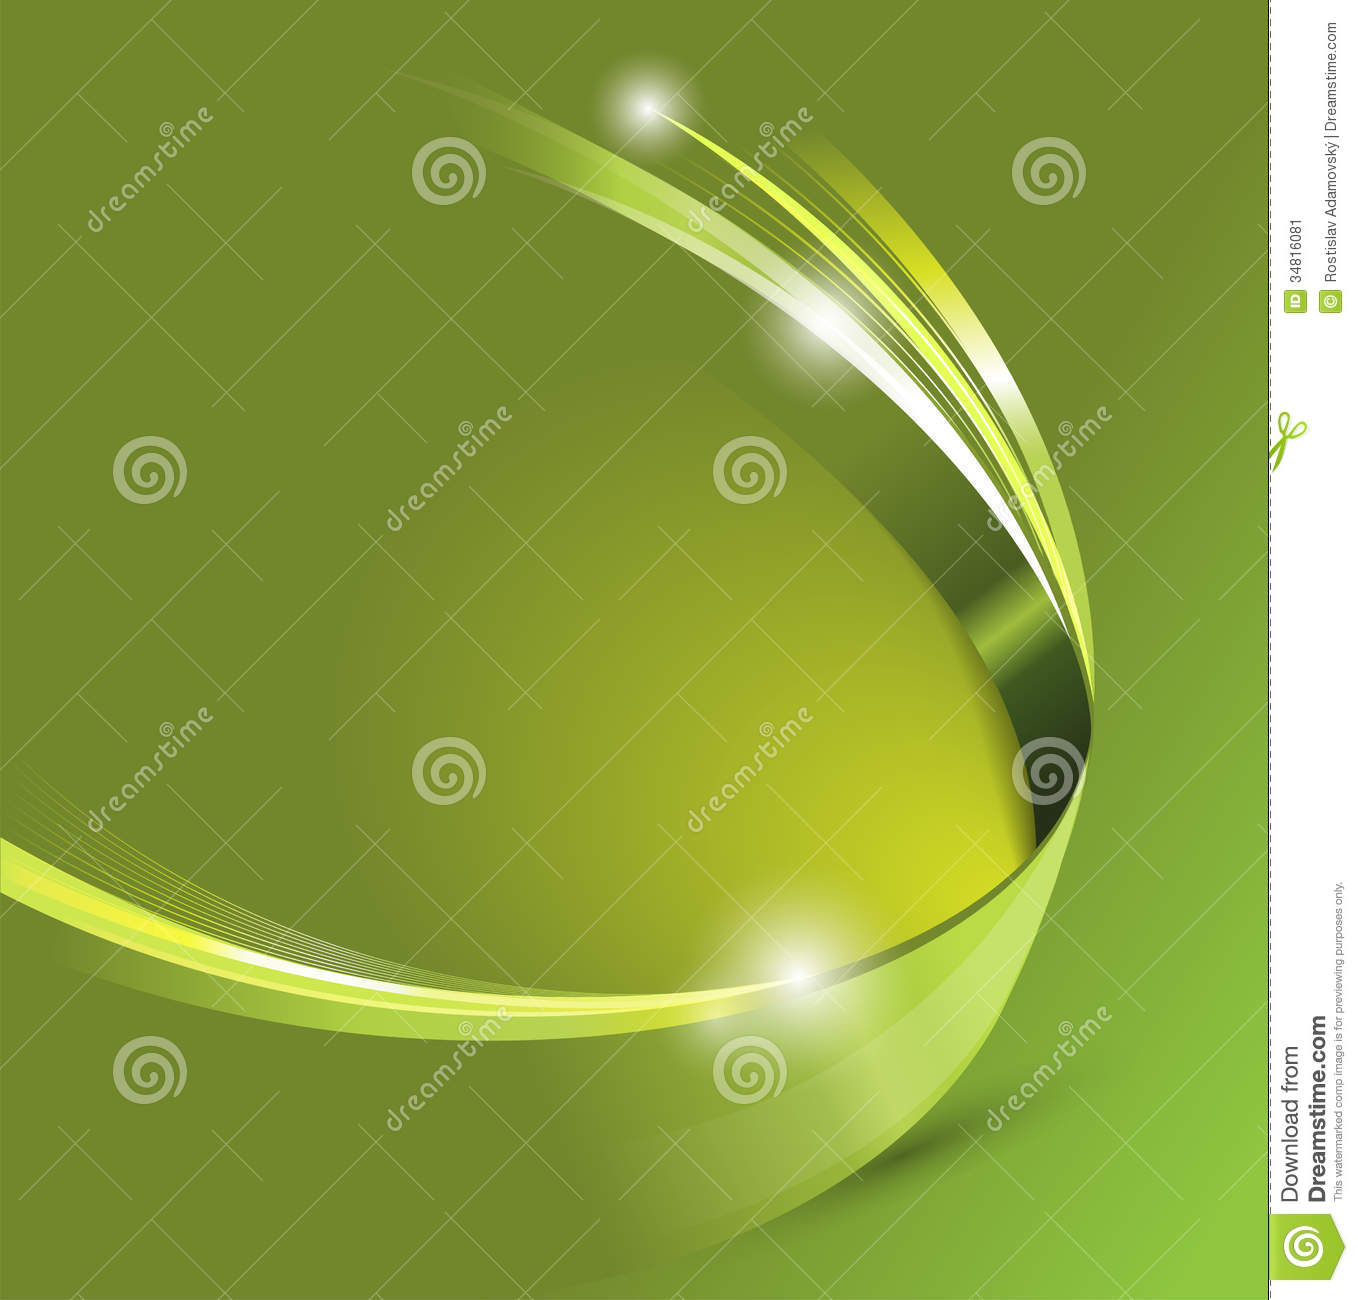 universal green abstract vector background with 3d effect